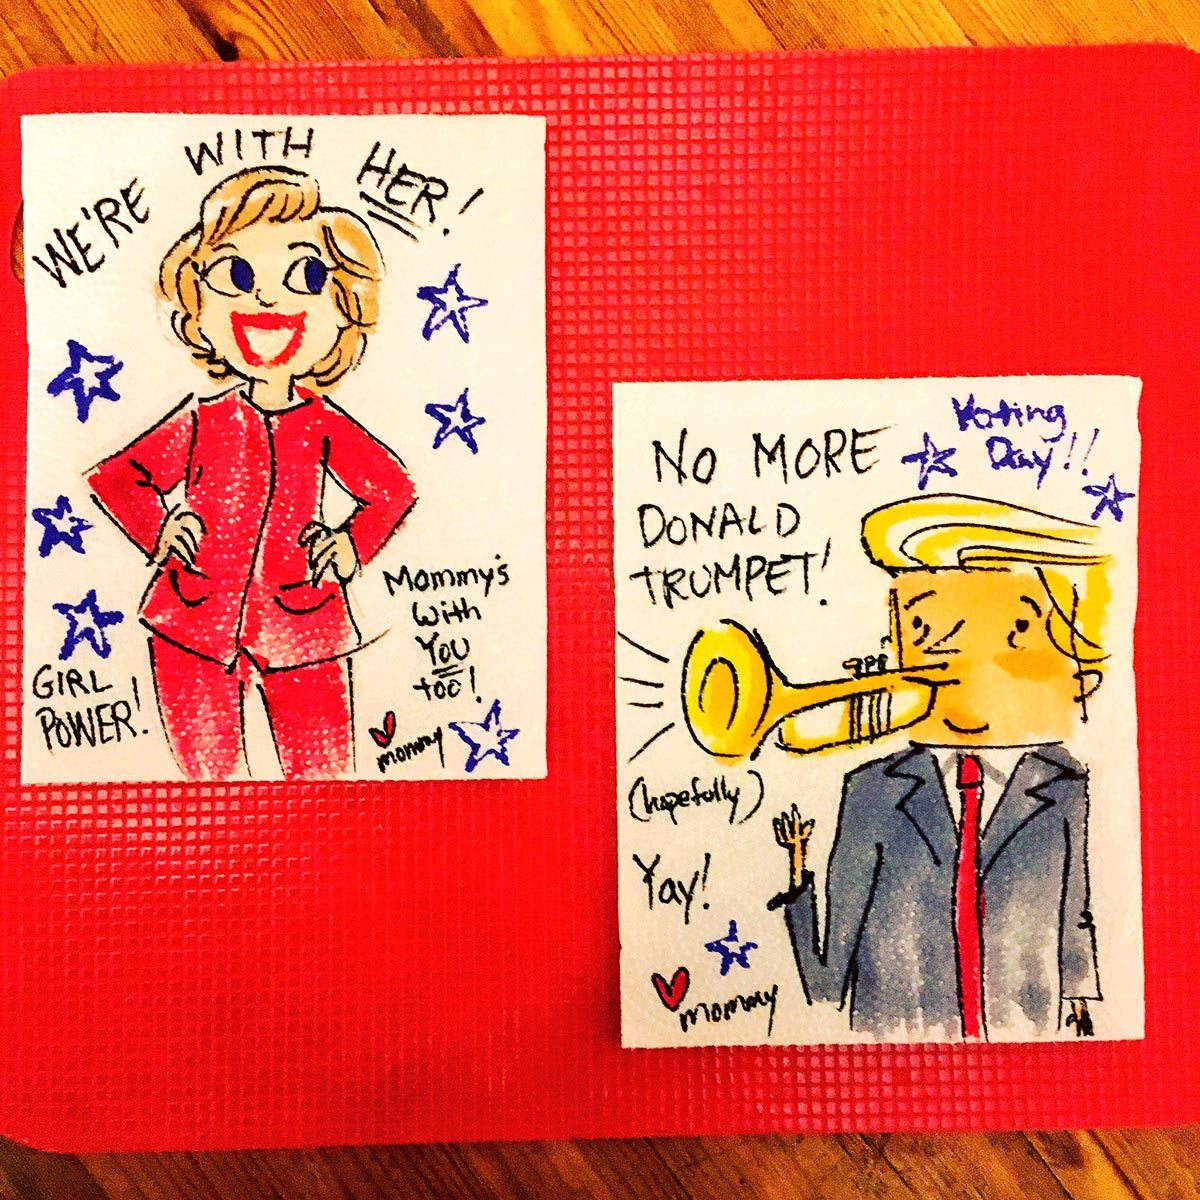 Hillary Clinton and Donald Trump by Aliki Theofilopoulos.